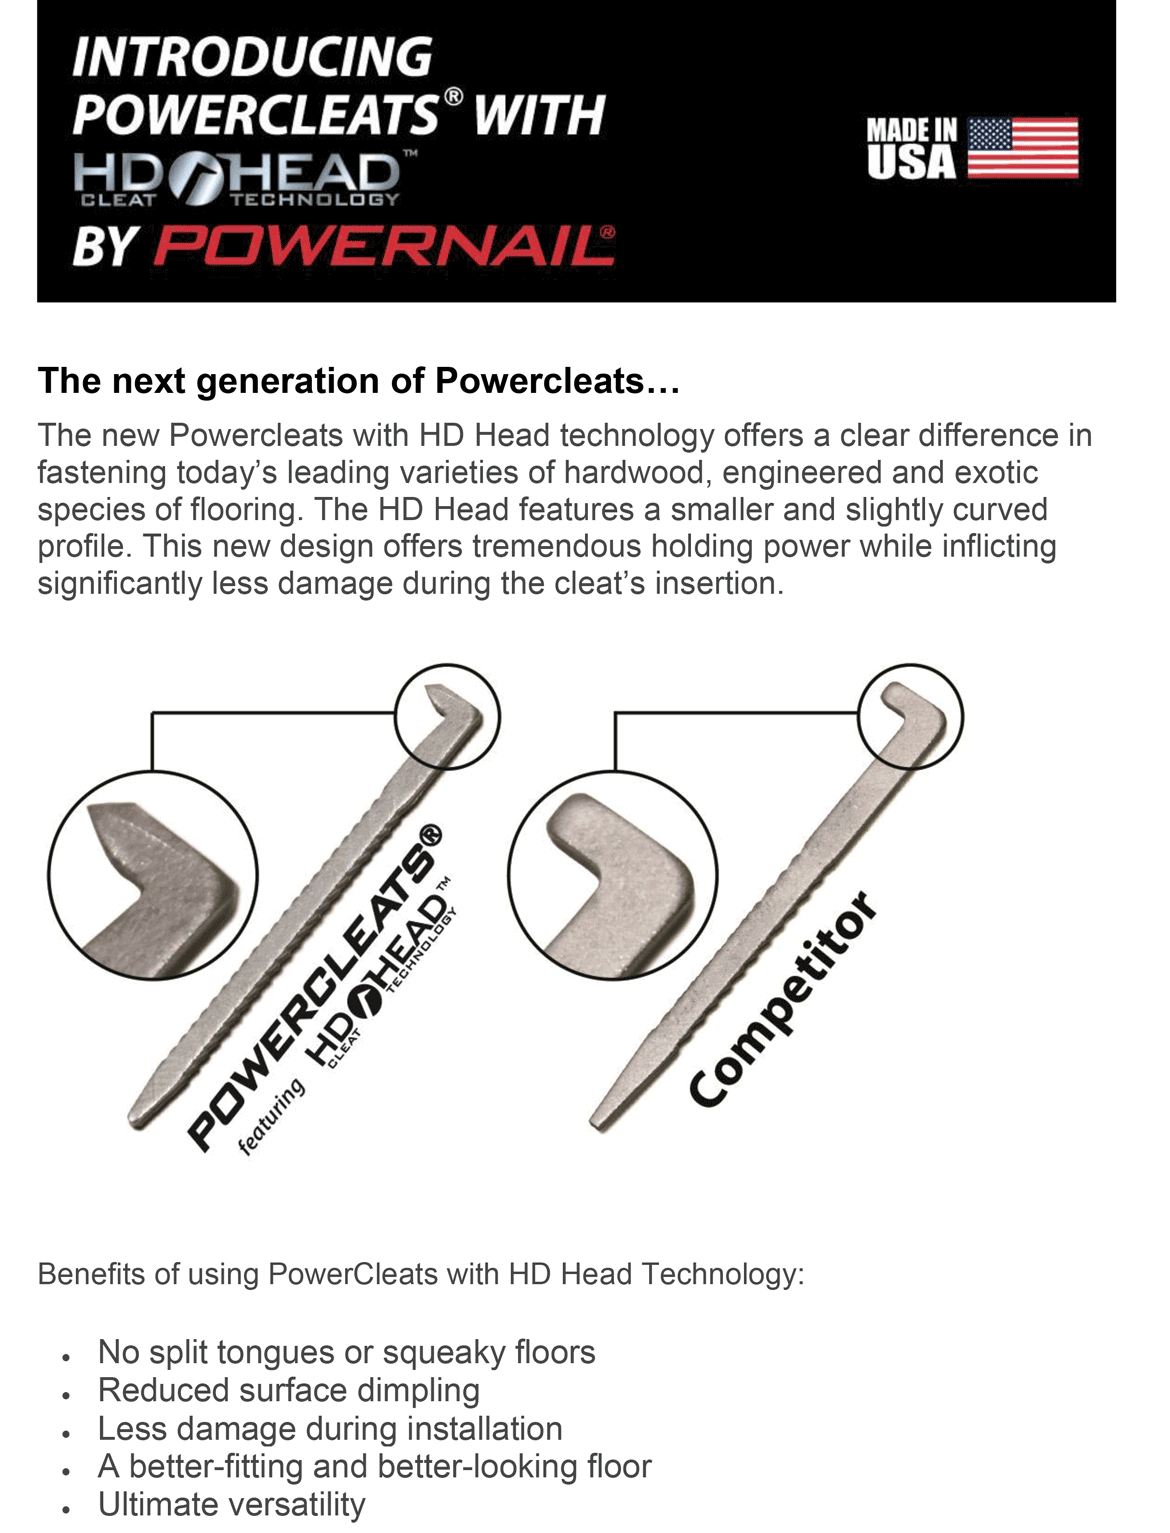 Powernail Technology-Flooring Tools amd Fasteners-Staplers and Cleats